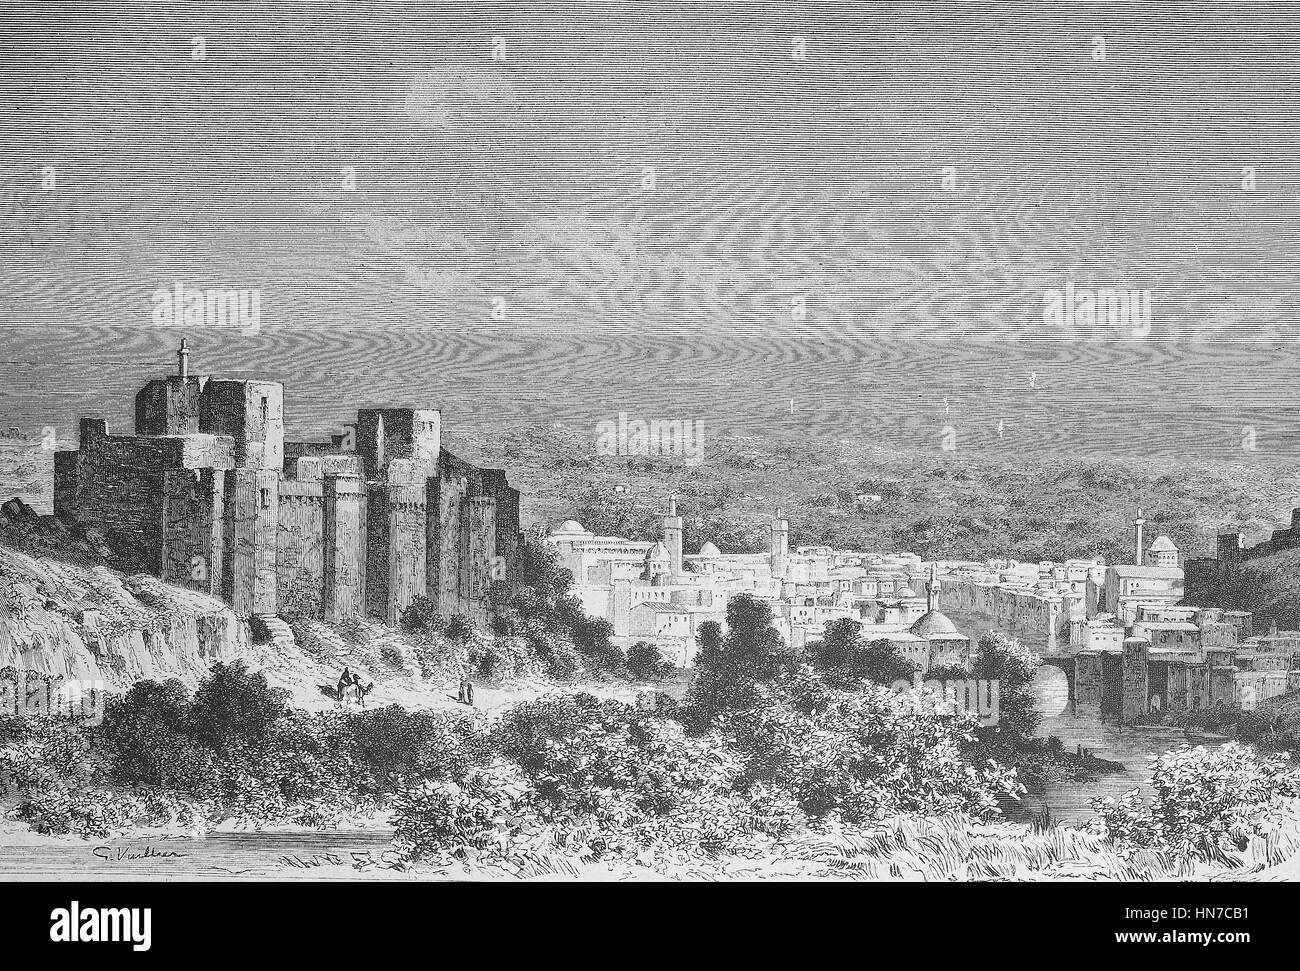 View of Tripoli in Syria, now Lebanon, Ansicht von Tripoli in Syrien, heute Libanon, woodcut from 1885, digital - Stock Image